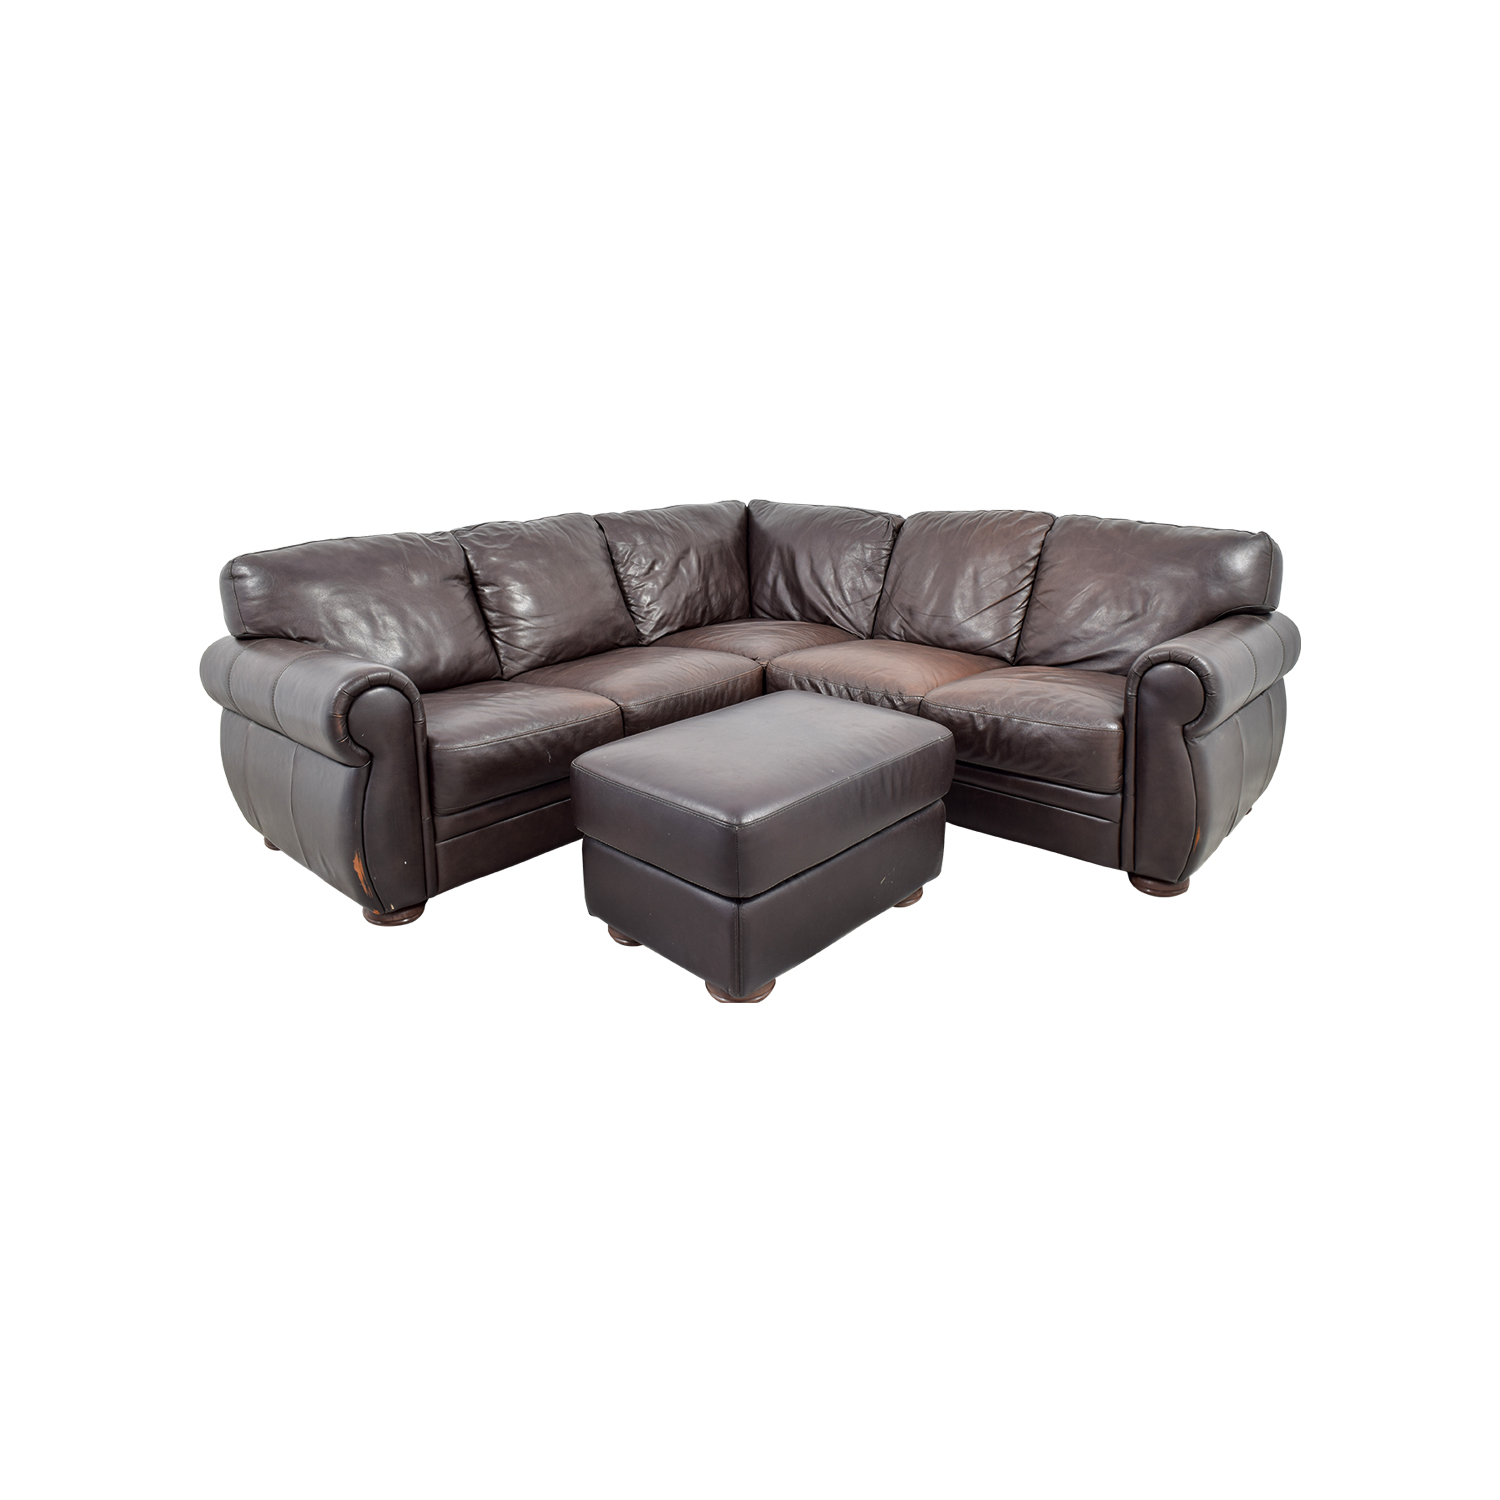 Chateau Dax Chateau Dax Brown Leather Sectional with Ottoman on sale